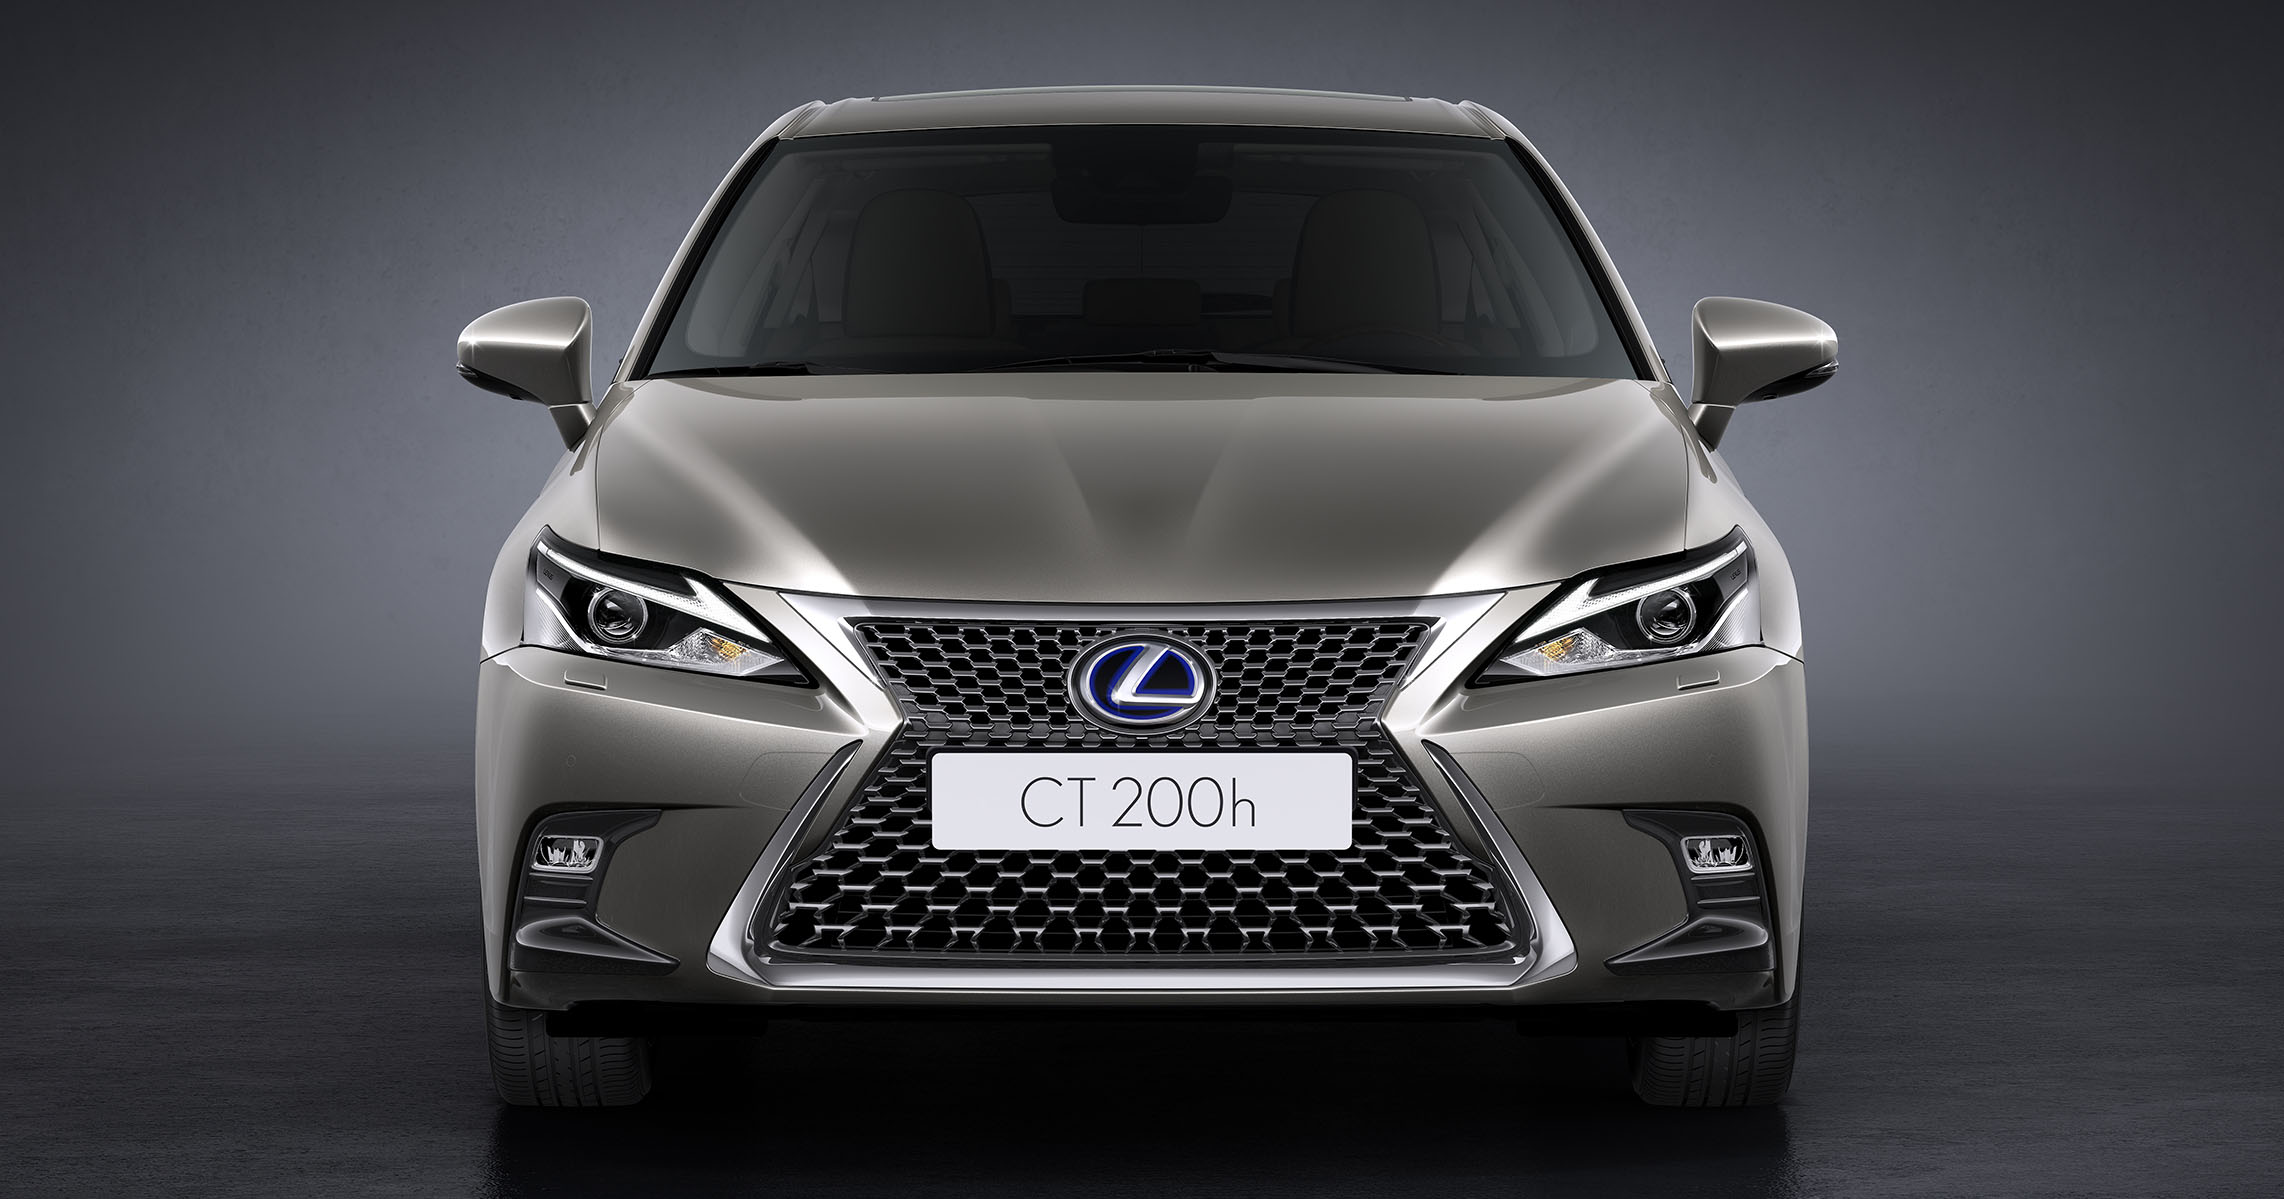 2018 Lexus CT 200h revealed with new styling, tech Paul ...